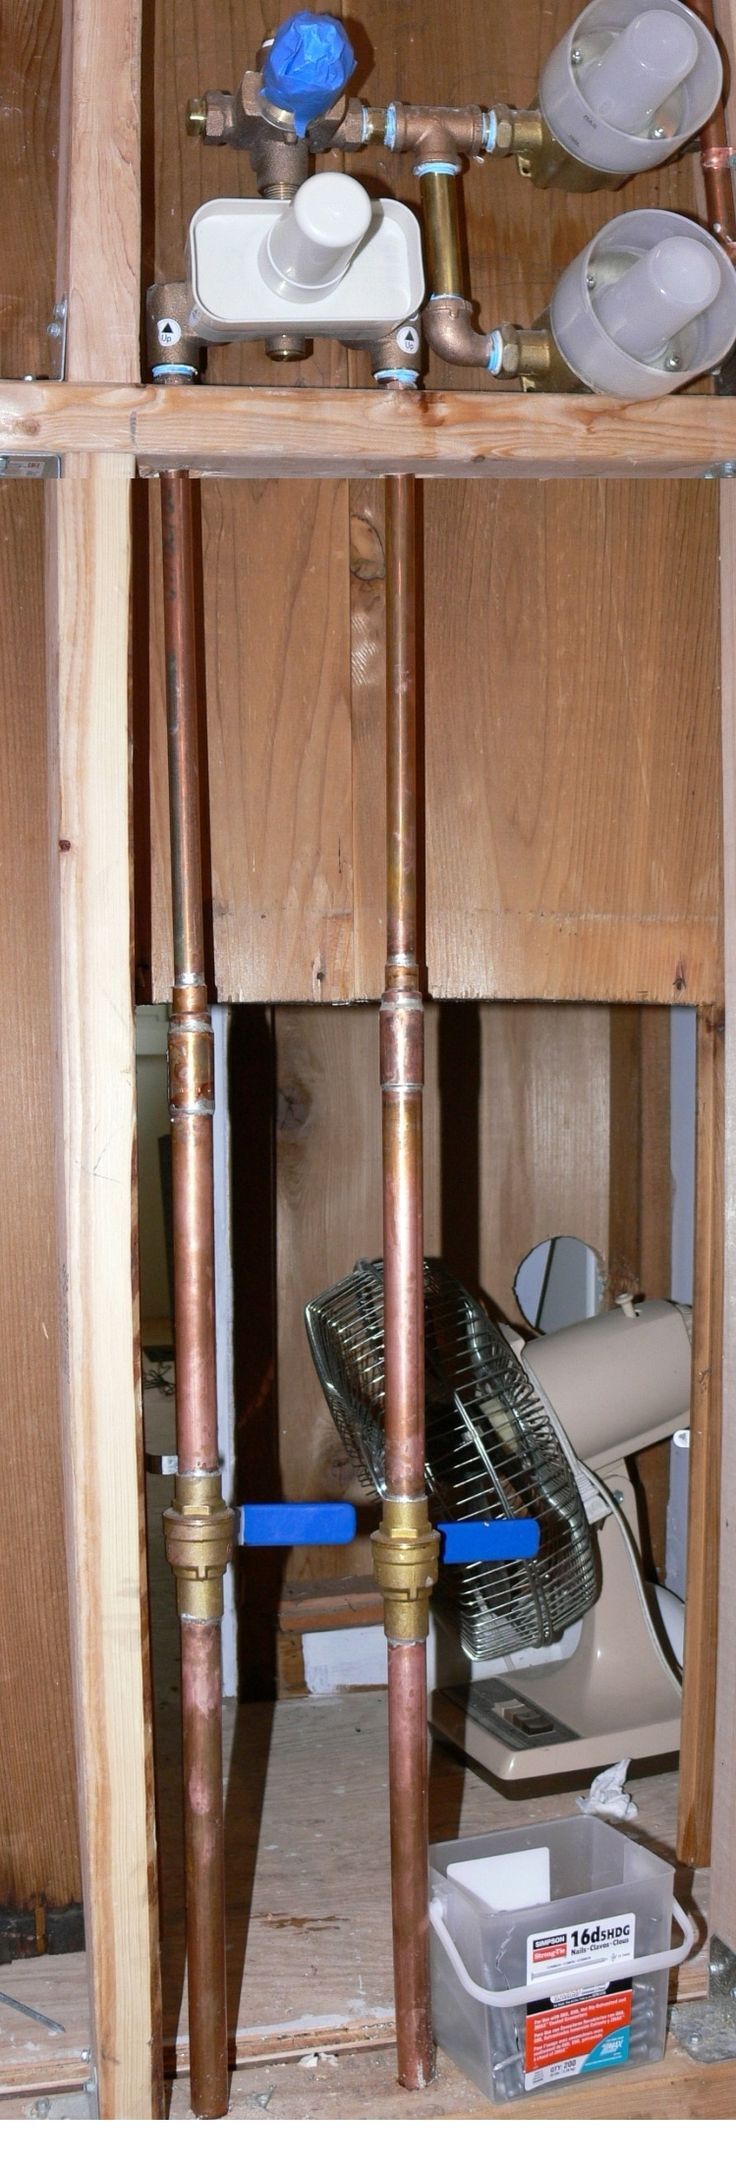 Photo Gallery Website Shower supply plumbing showing shut off ball valves to